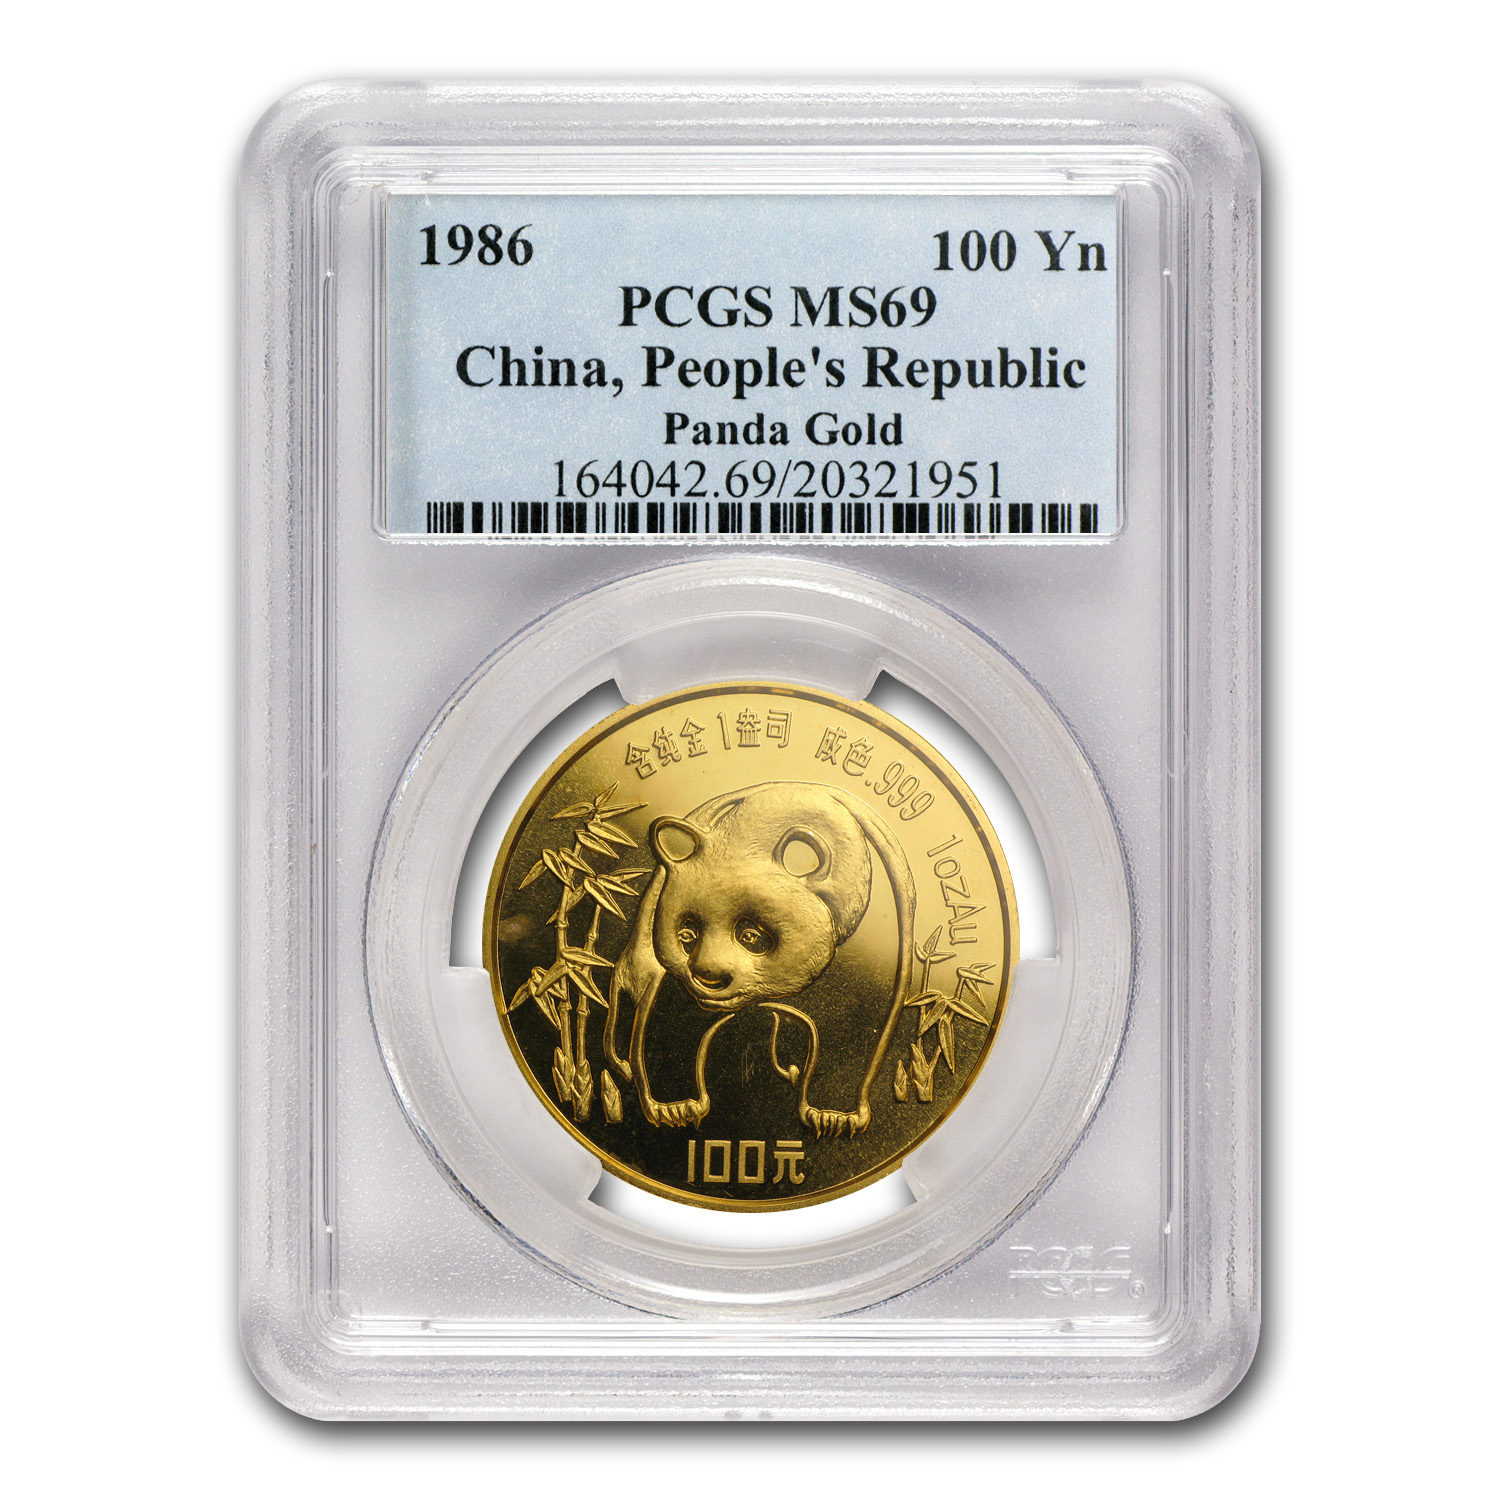 1986 1 oz Gold Chinese Panda MS-69 PCGS